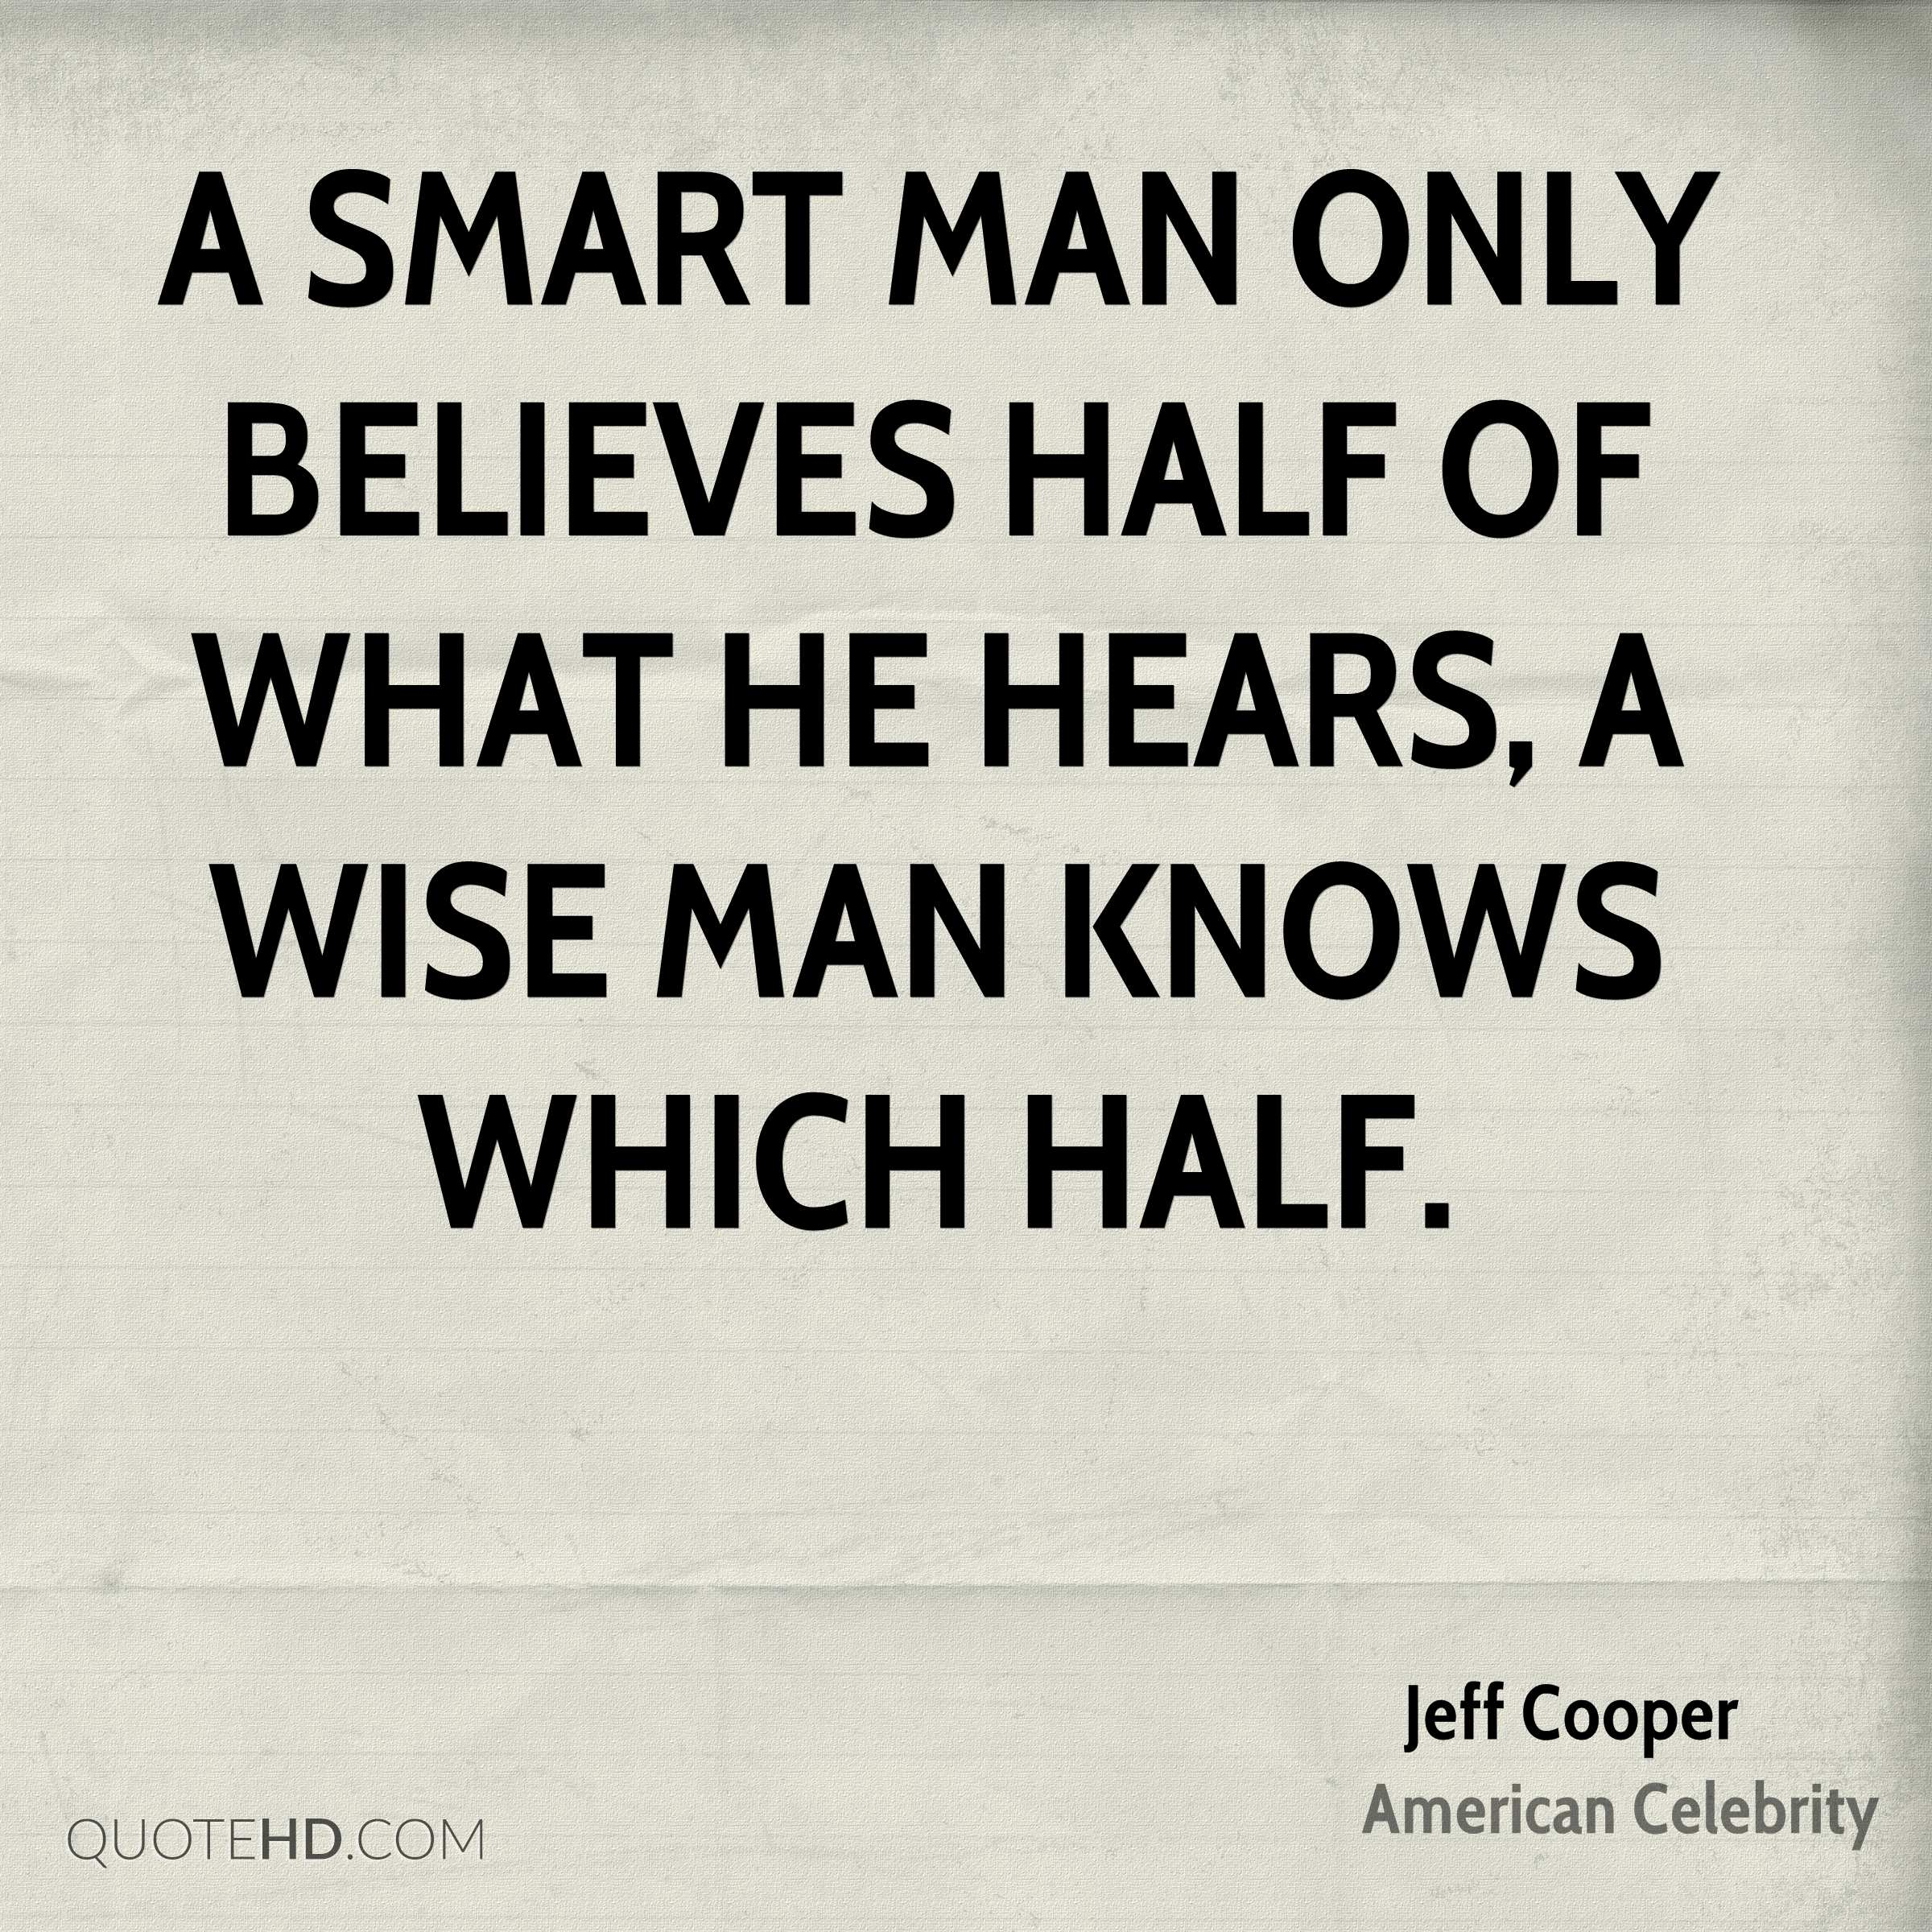 A Smart Man Only Believes Half Of What He Hears, A Wise Man Knows Which